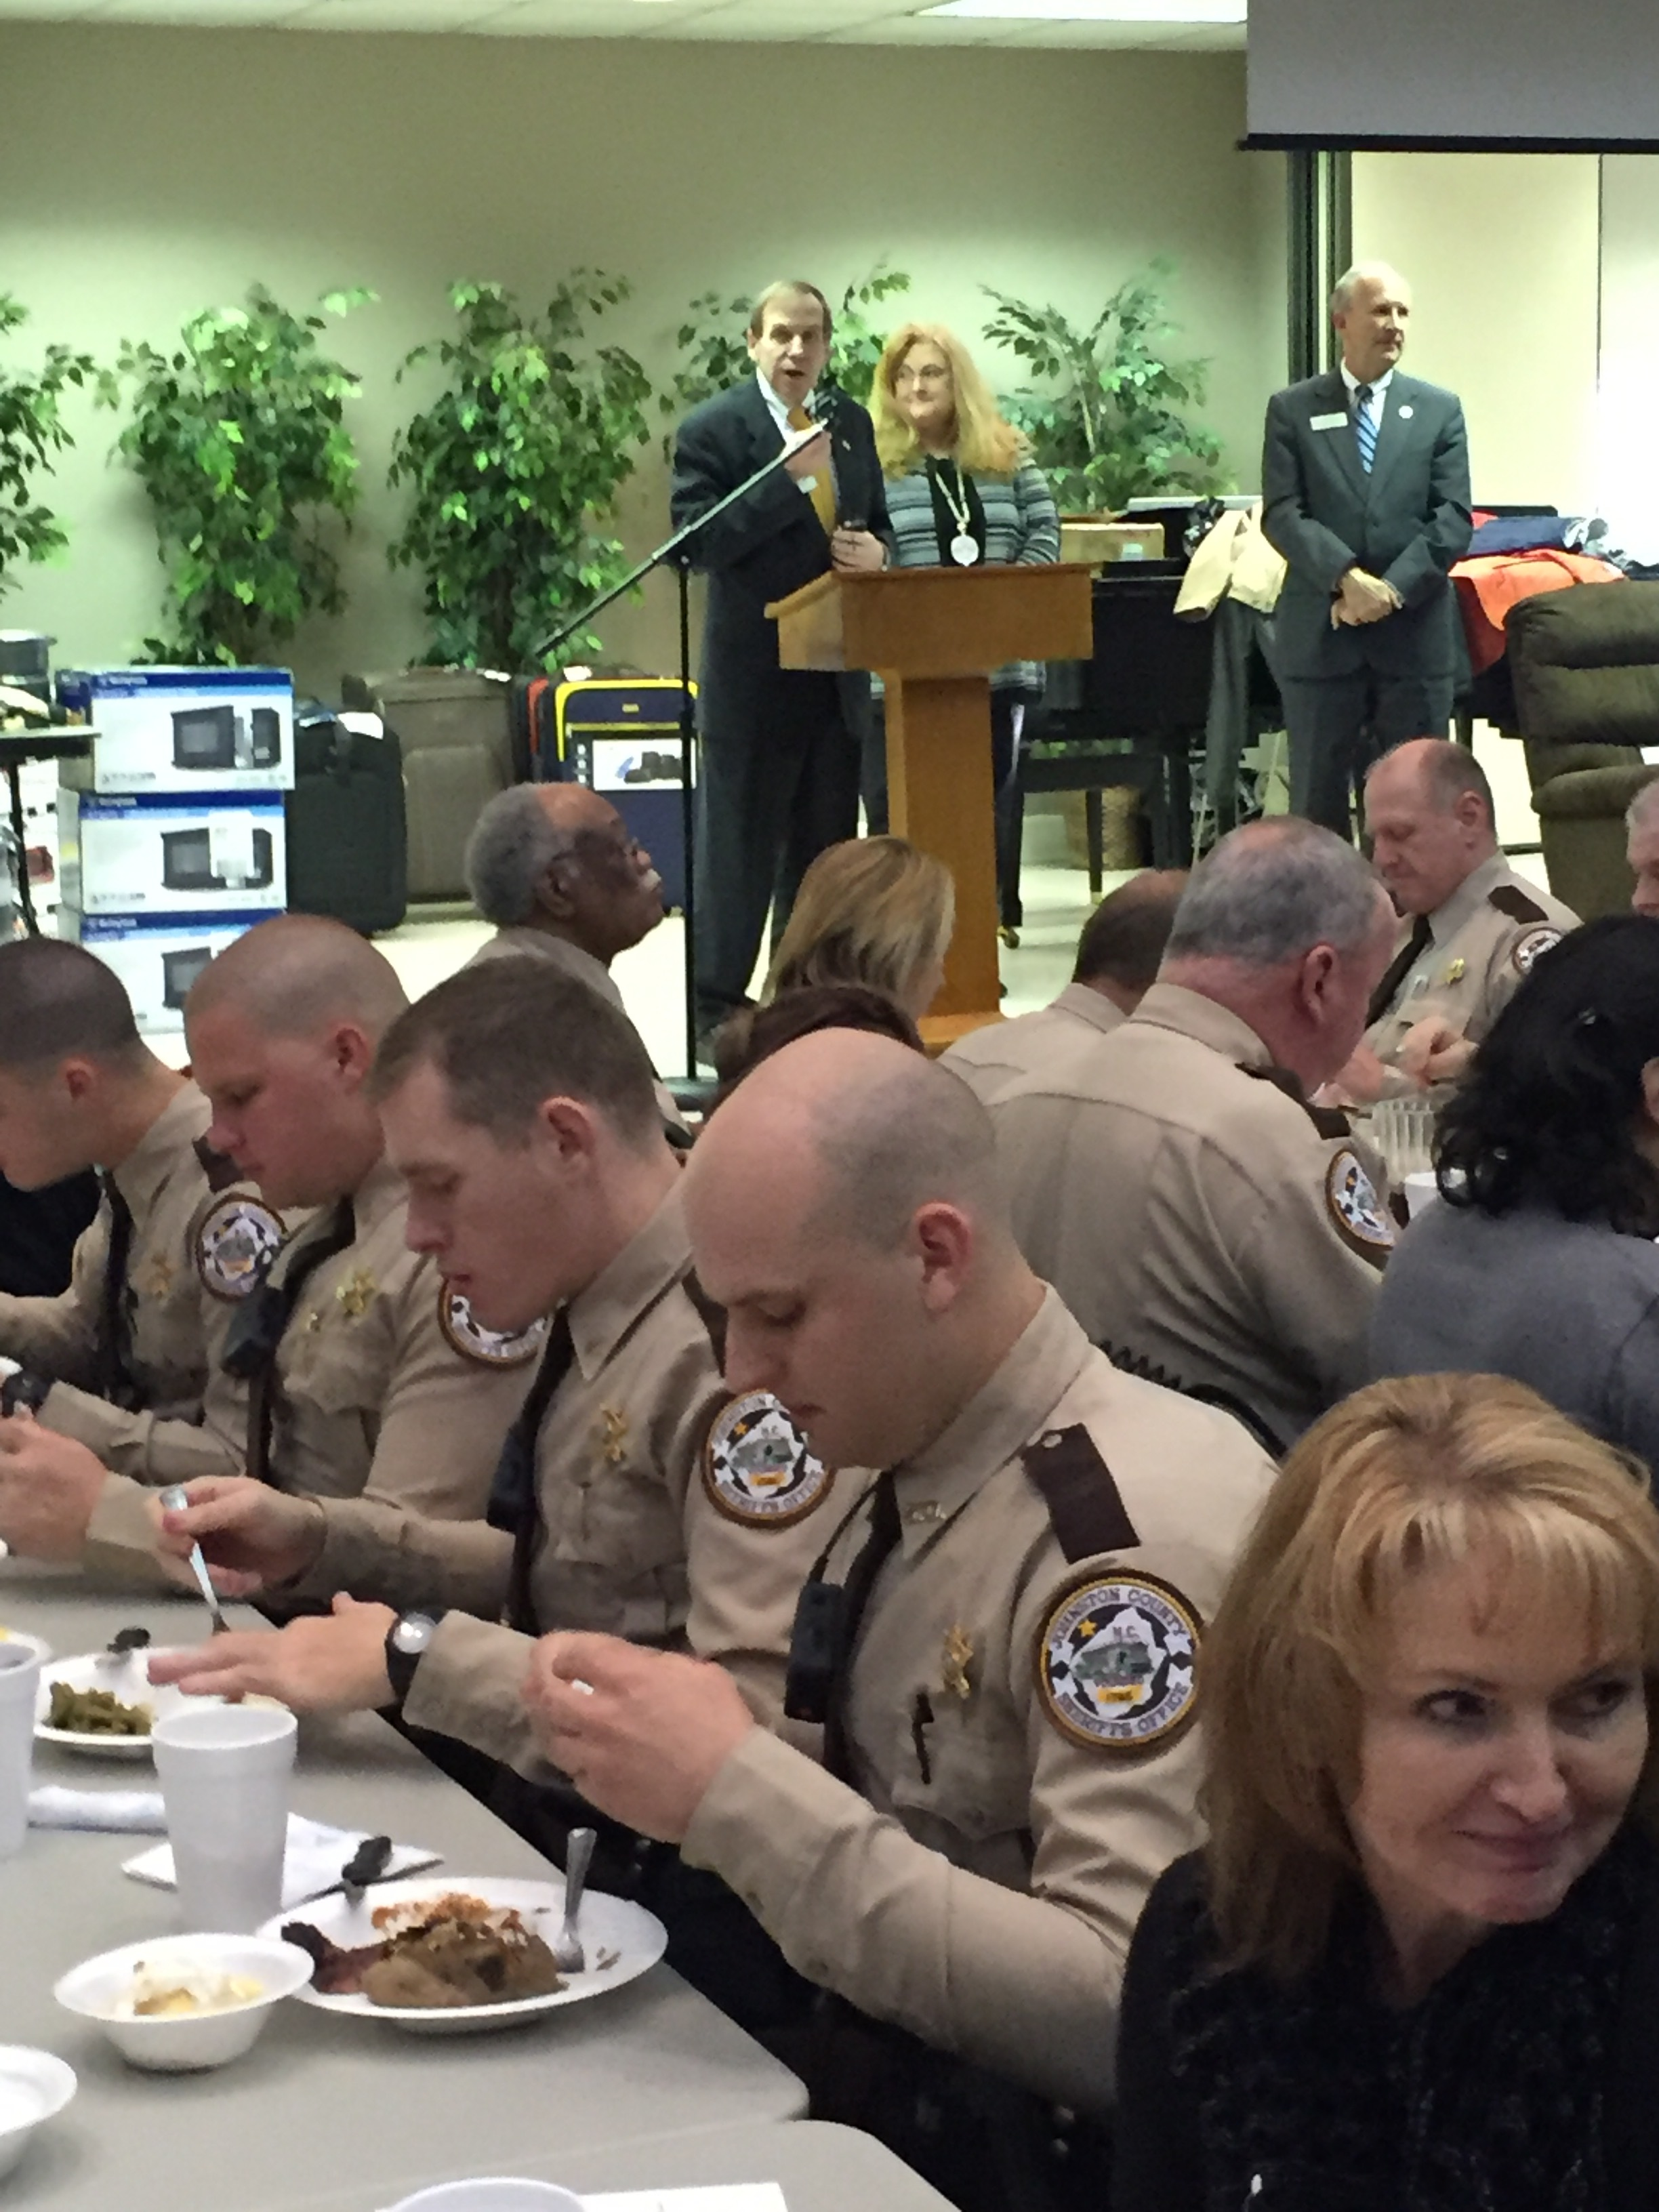 Speaking at Johnston County Law Enforcement Appreciation Dinner, April 5, 2015.